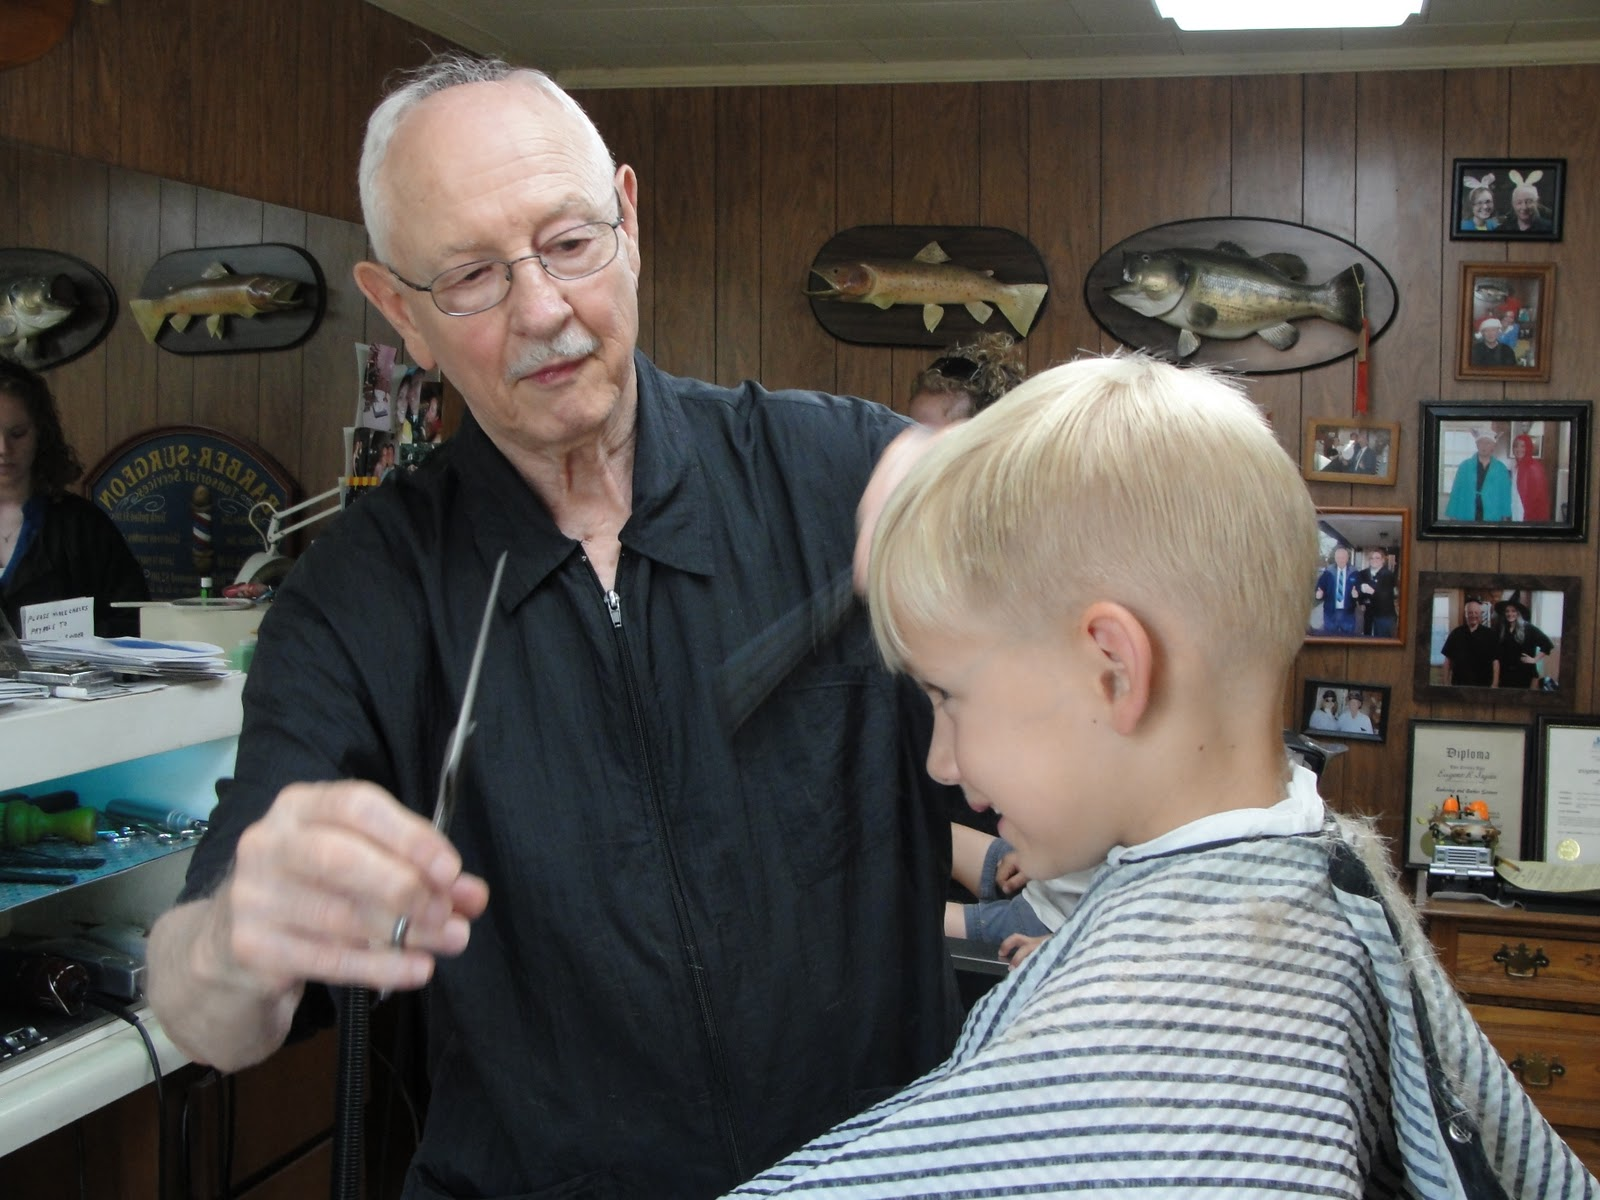 This is Gene the barber. He cuts my boys' hair, Pappy and Grandpa's